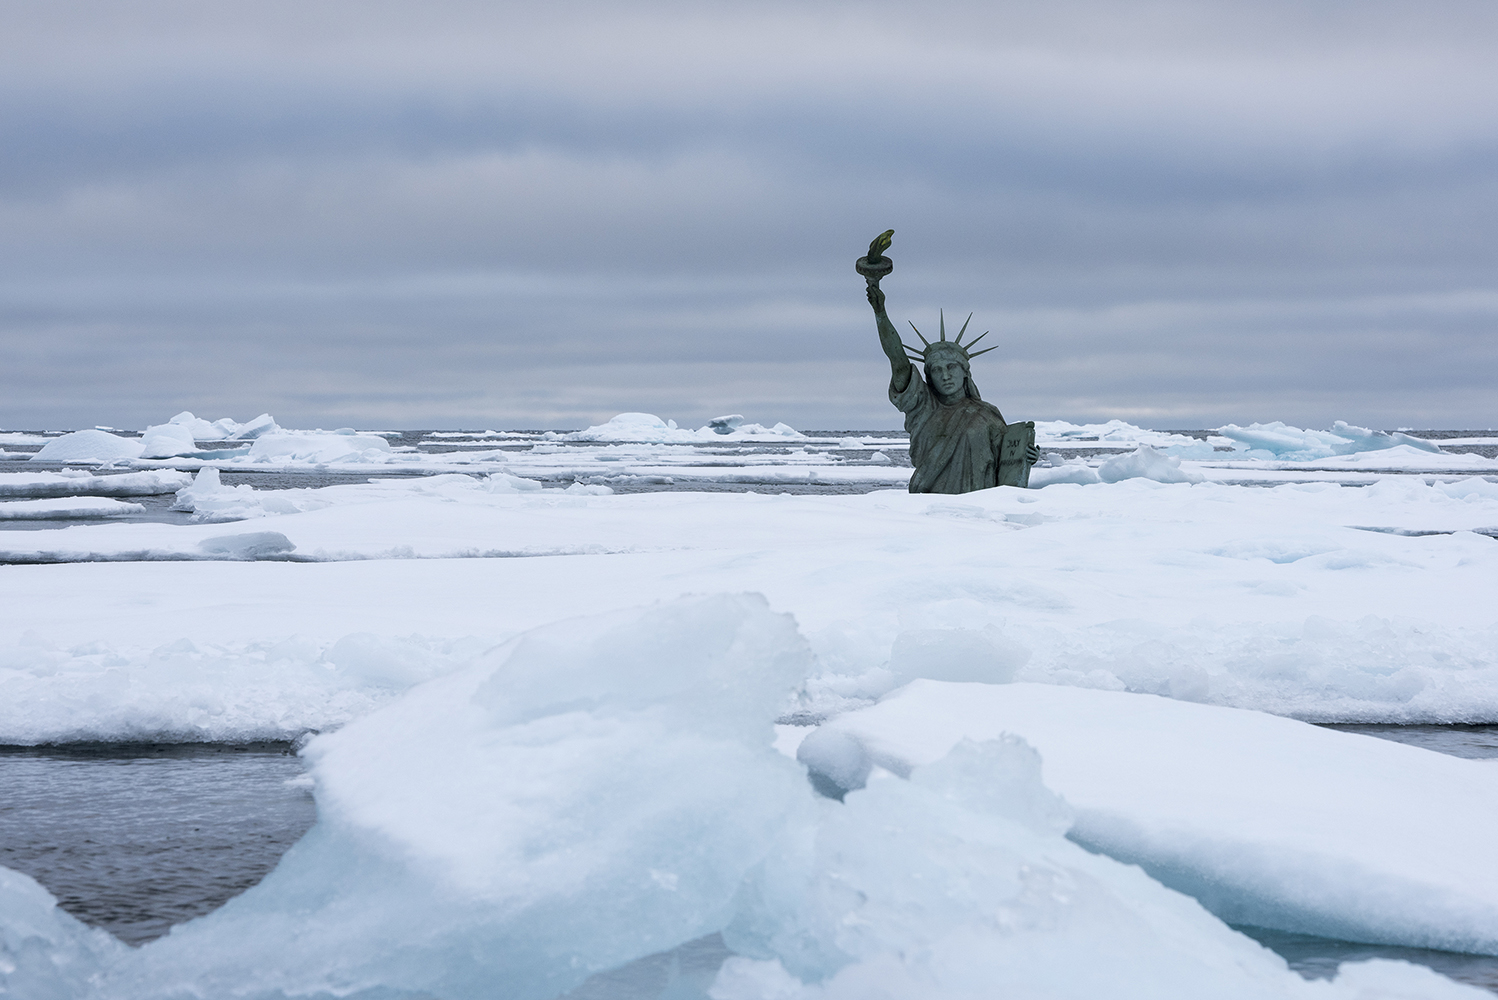 7/9 2014, Svalbard.A submerged Statue of Liberty in the middle of the Arctic Ocean visualises the effects of climate change on sea level rise and extreme weather events. Image is shot in the Arctic Ocean northwest of Svalbard, Norway during a Greenpeace ship tour as part of the Save the Arctic campaign, working to create an Arctic sanctuary.